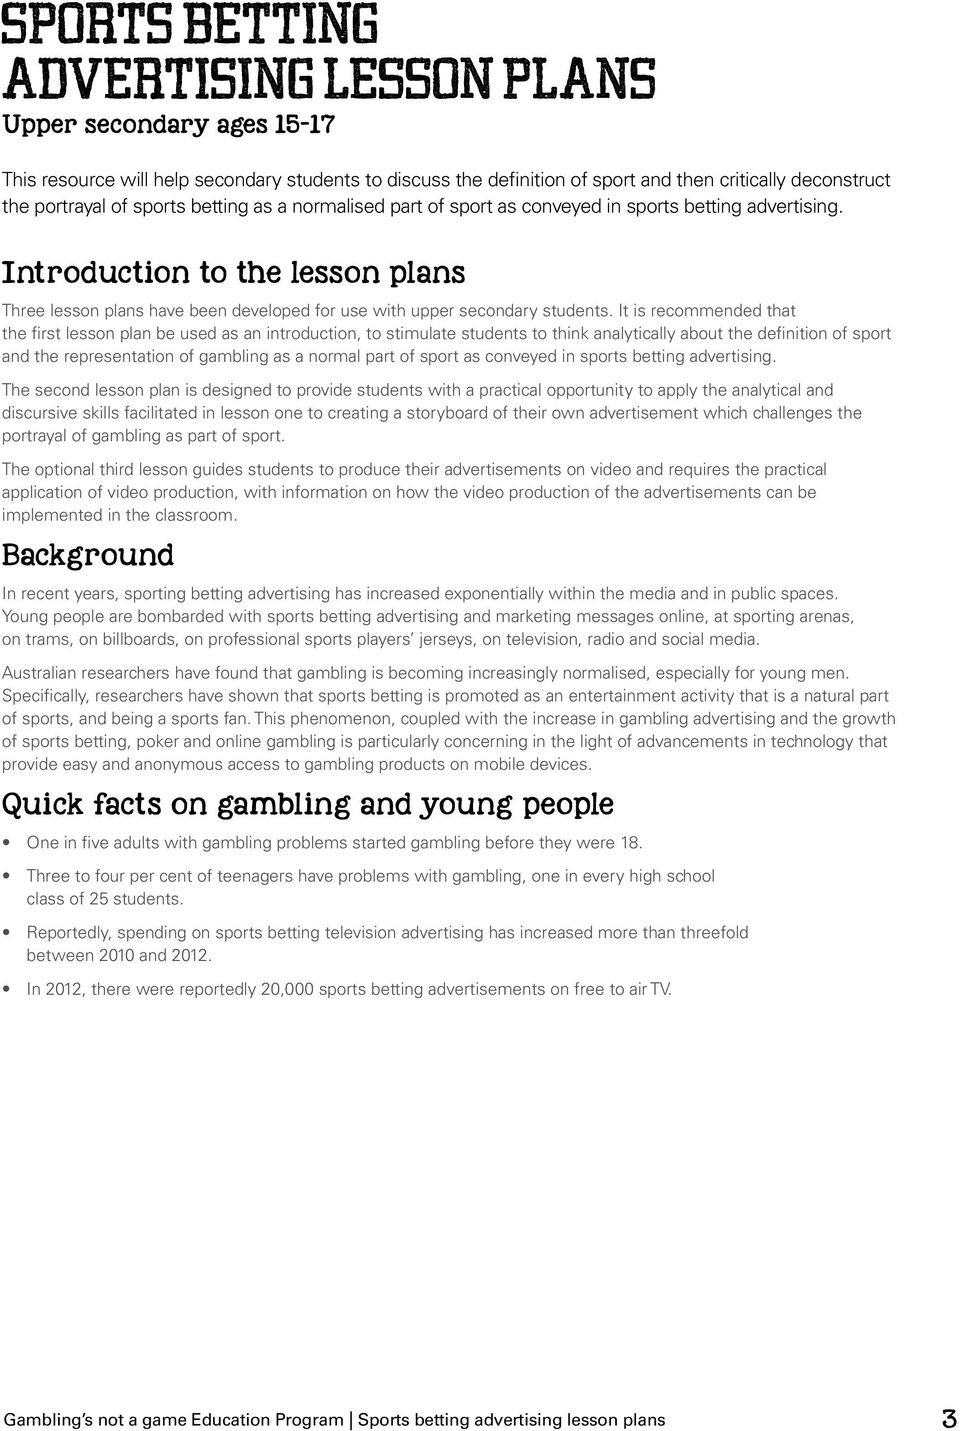 It is recommended that the first lesson plan be used as an introduction, to stimulate students to think analytically about the definition of sport and the representation of gambling as a normal part